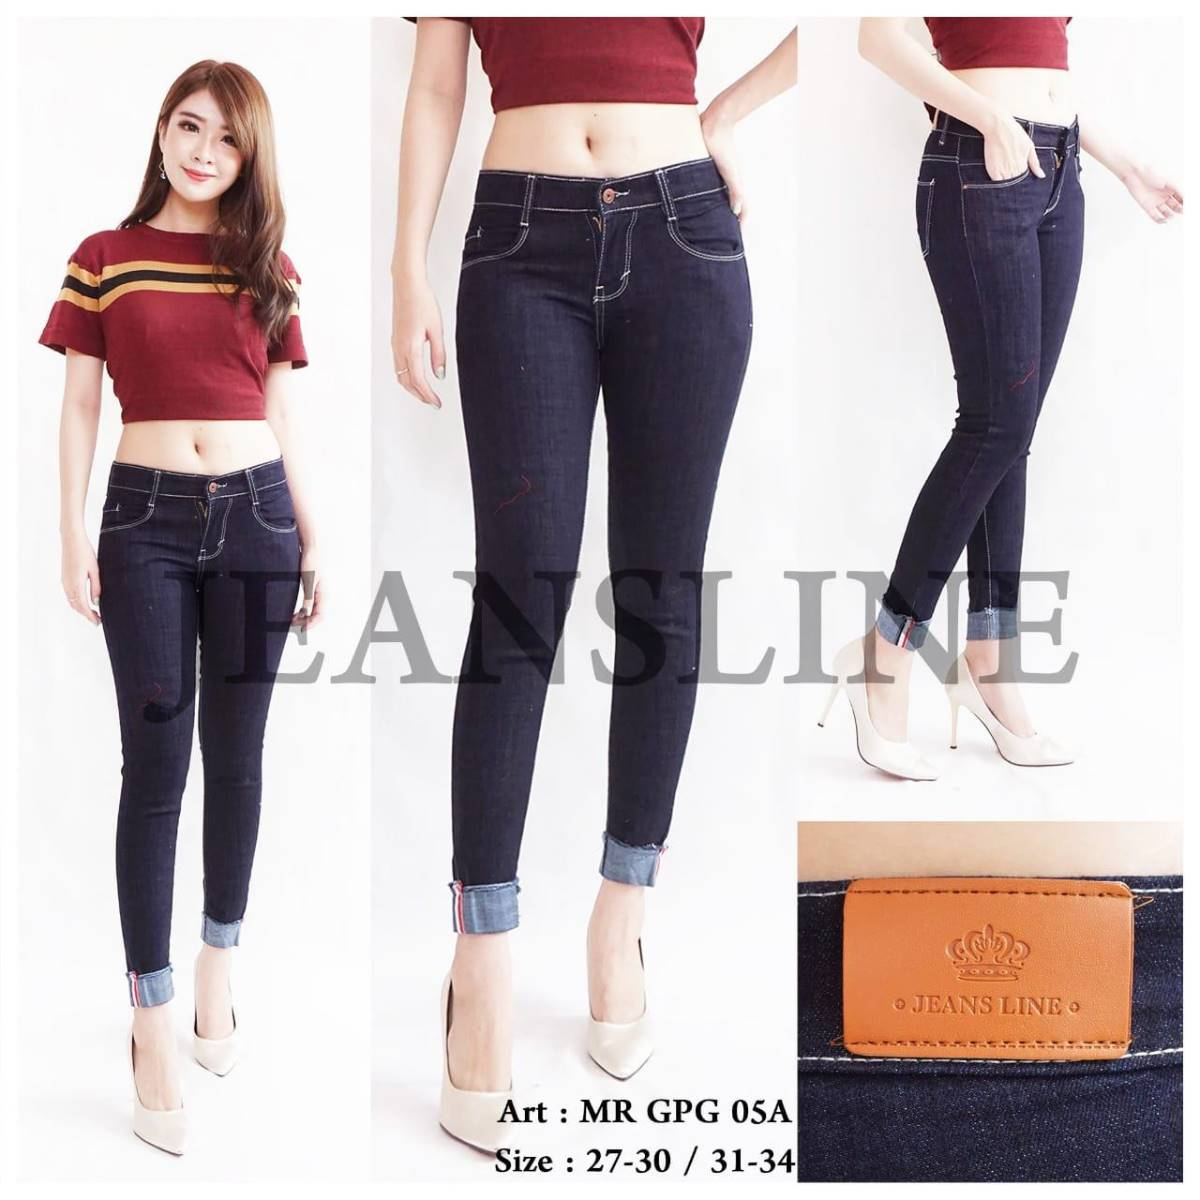 Celana Panjang Jeans Ladies (mr Gpg 05a) - Size 31, 32, 33, 343